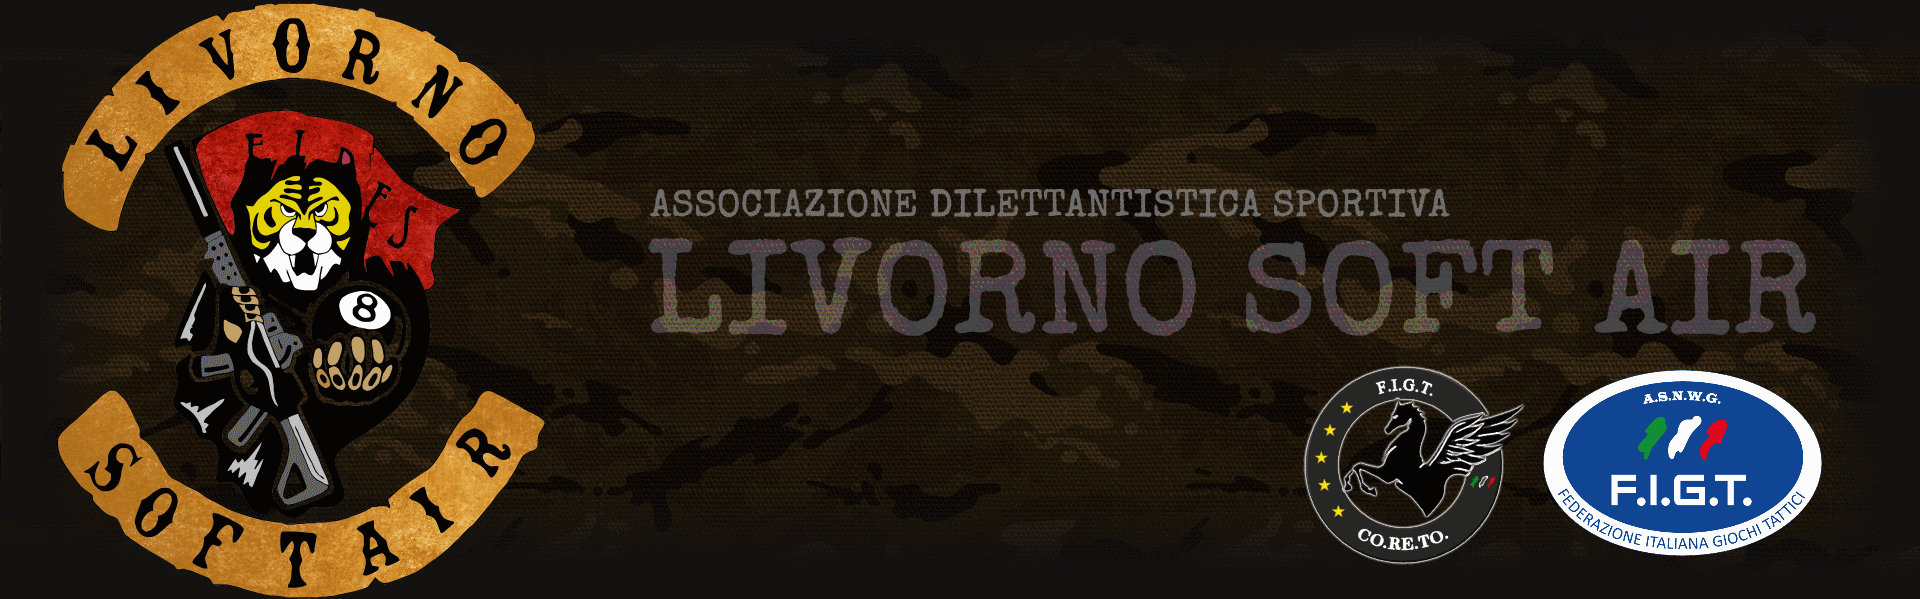 Associazione Sportiva Dilettantistica livornese - Together we stand - since 2003